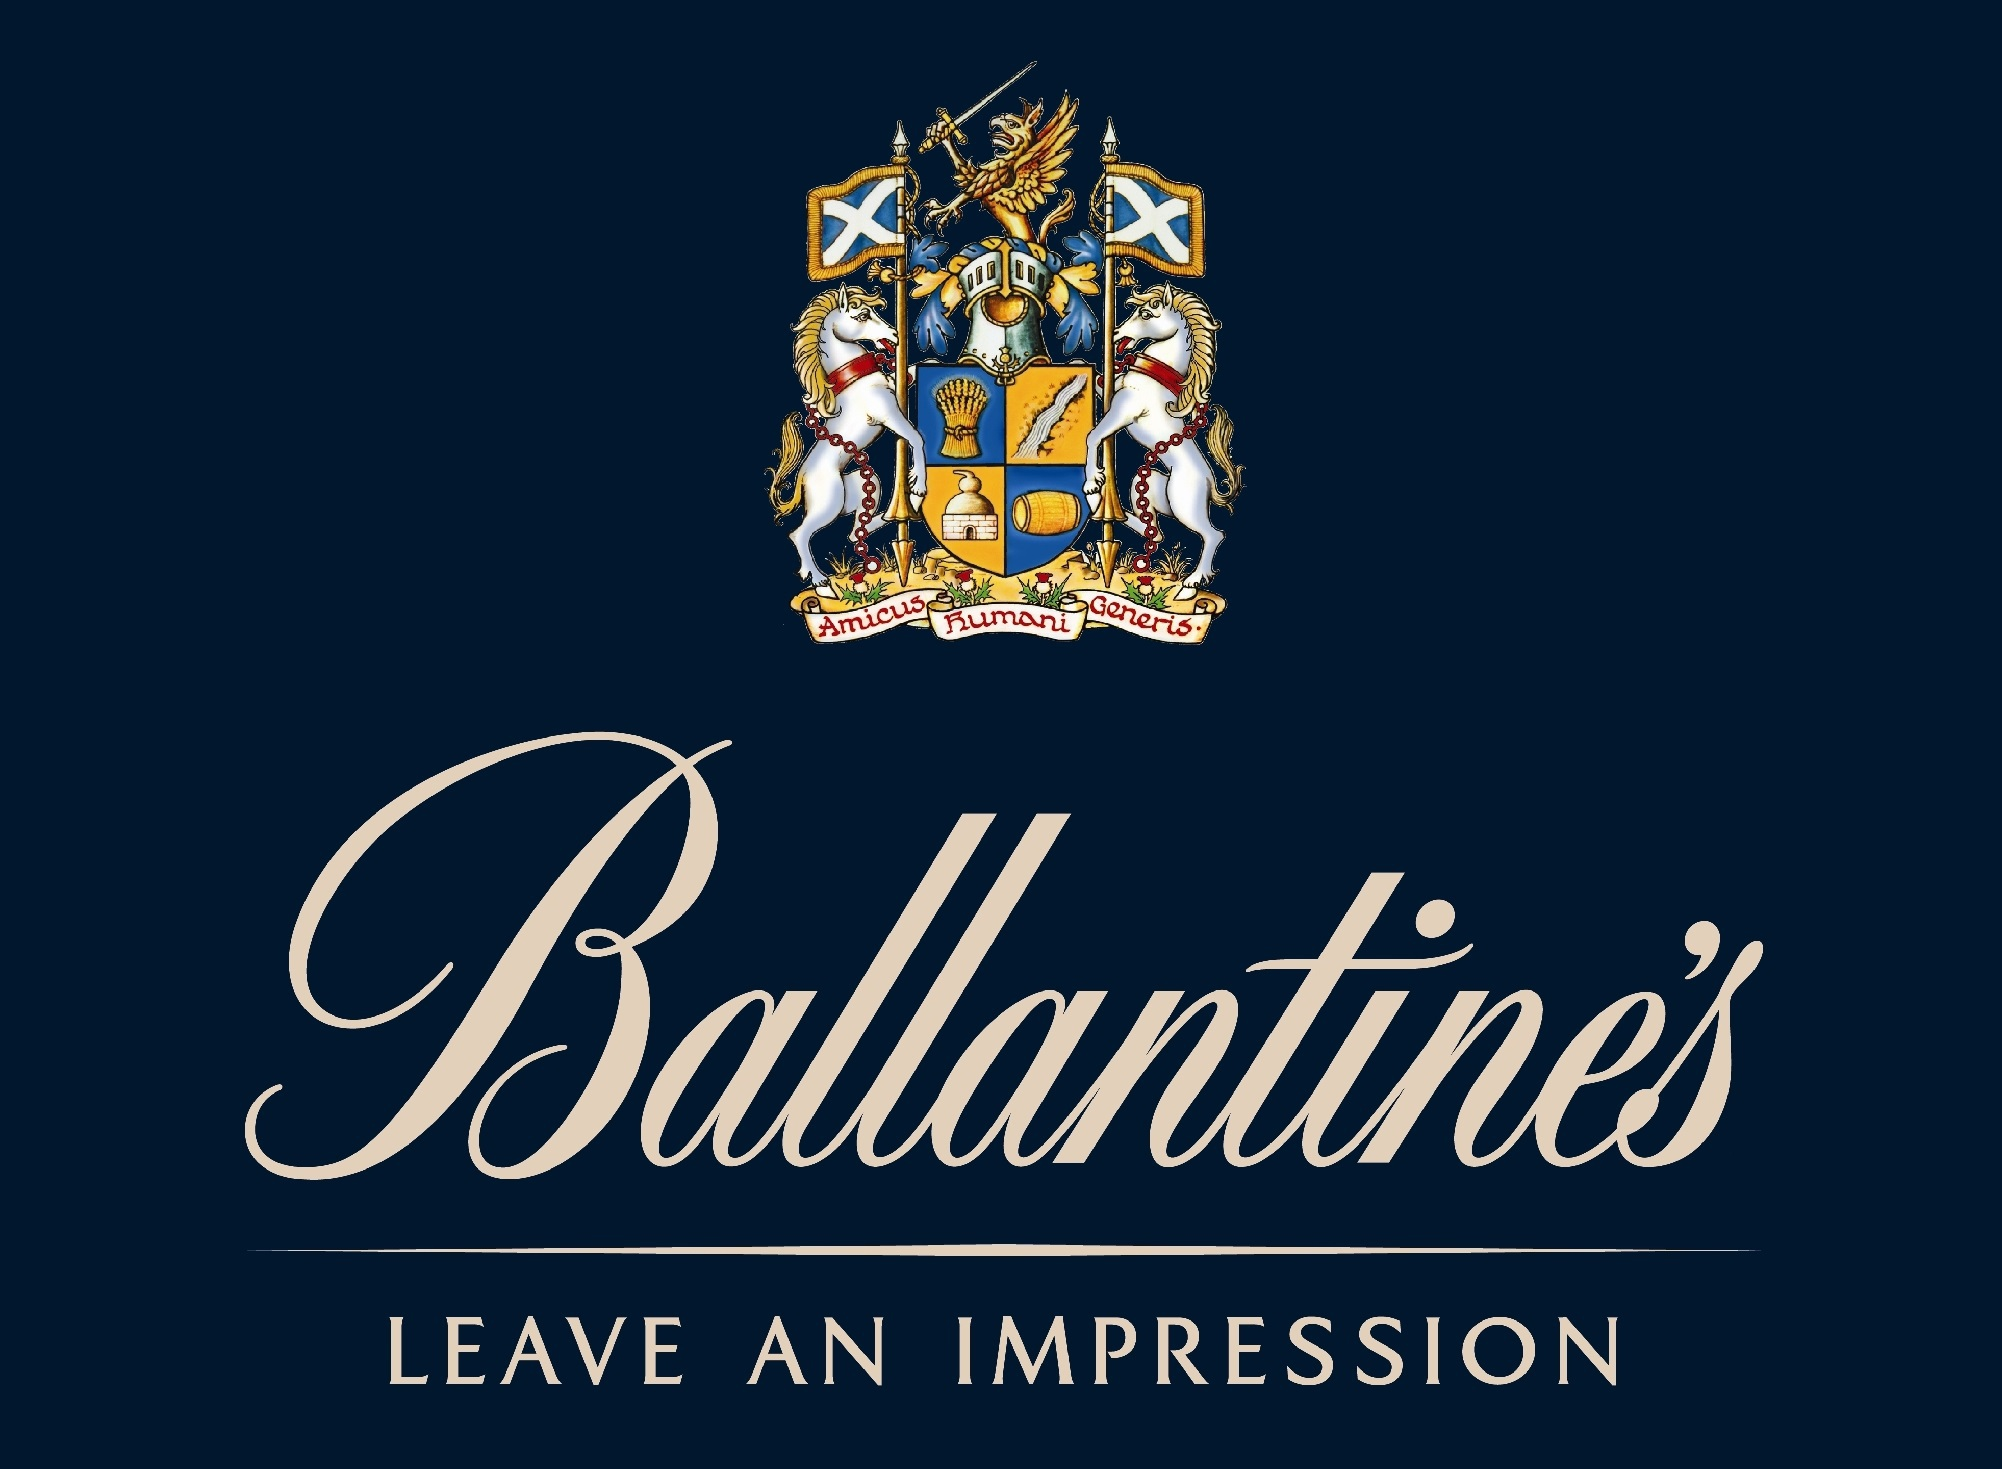 Ballantines Wallpapers